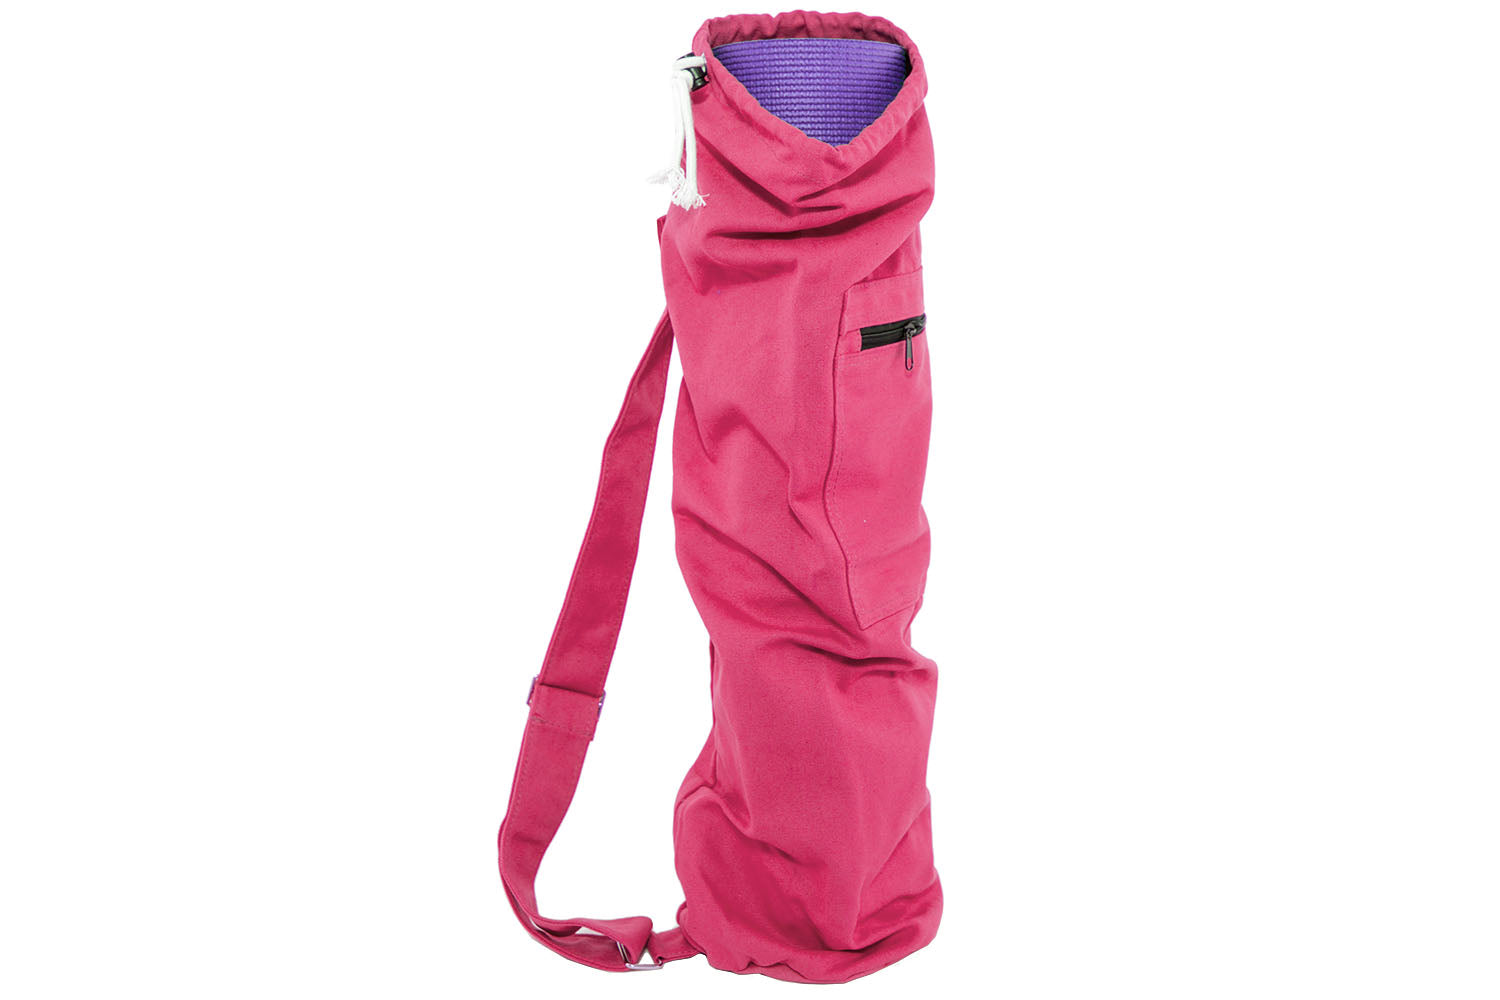 Pink Yoga Mat Bag with Side Pocket